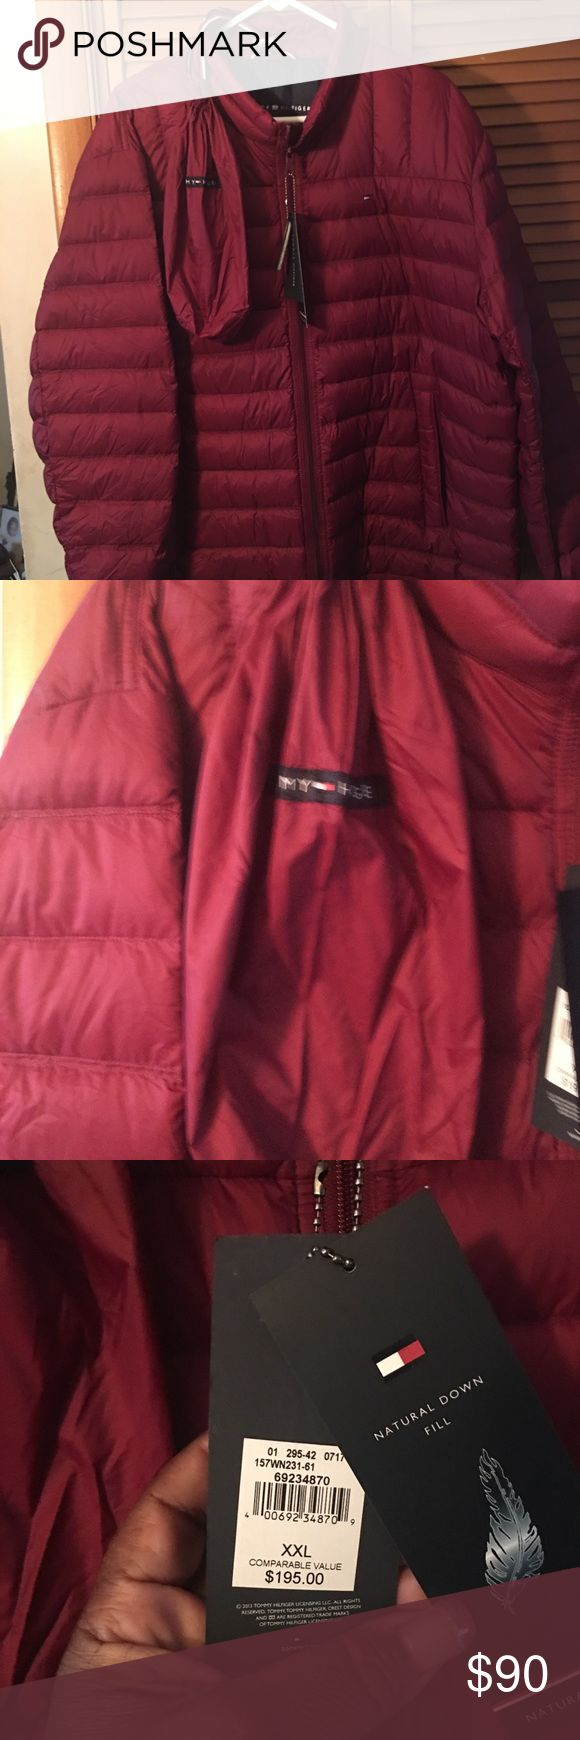 NWT Tommy Hilfiger down jacket Brand new TommyHilfiger unisex jacket Size 2X men's 3X women's The little bag is where you store the coat Tommy Hilfiger Jackets & Coats Puffers